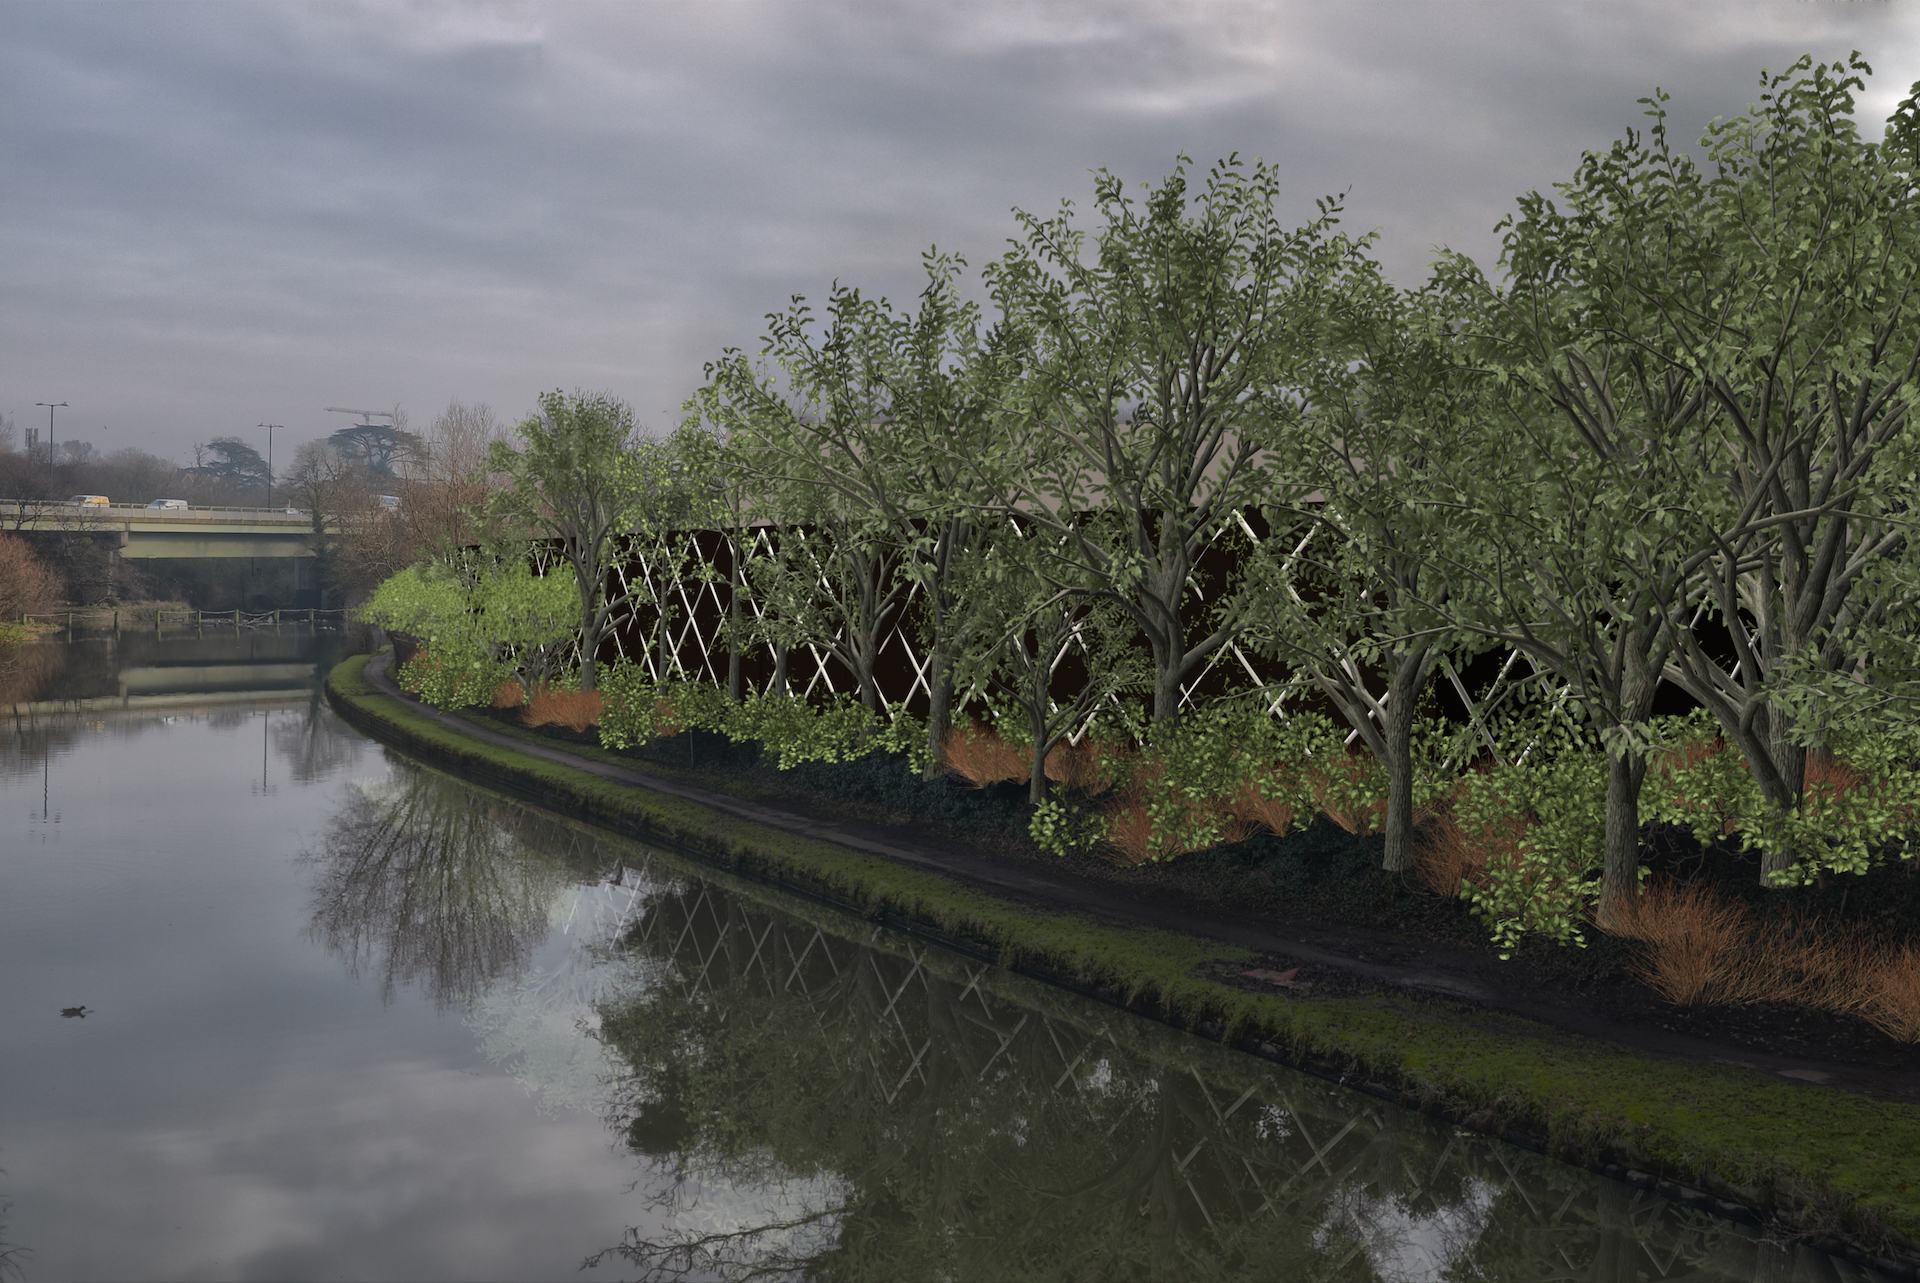 Visualisation of new fence and planting scheme alongside the canal.